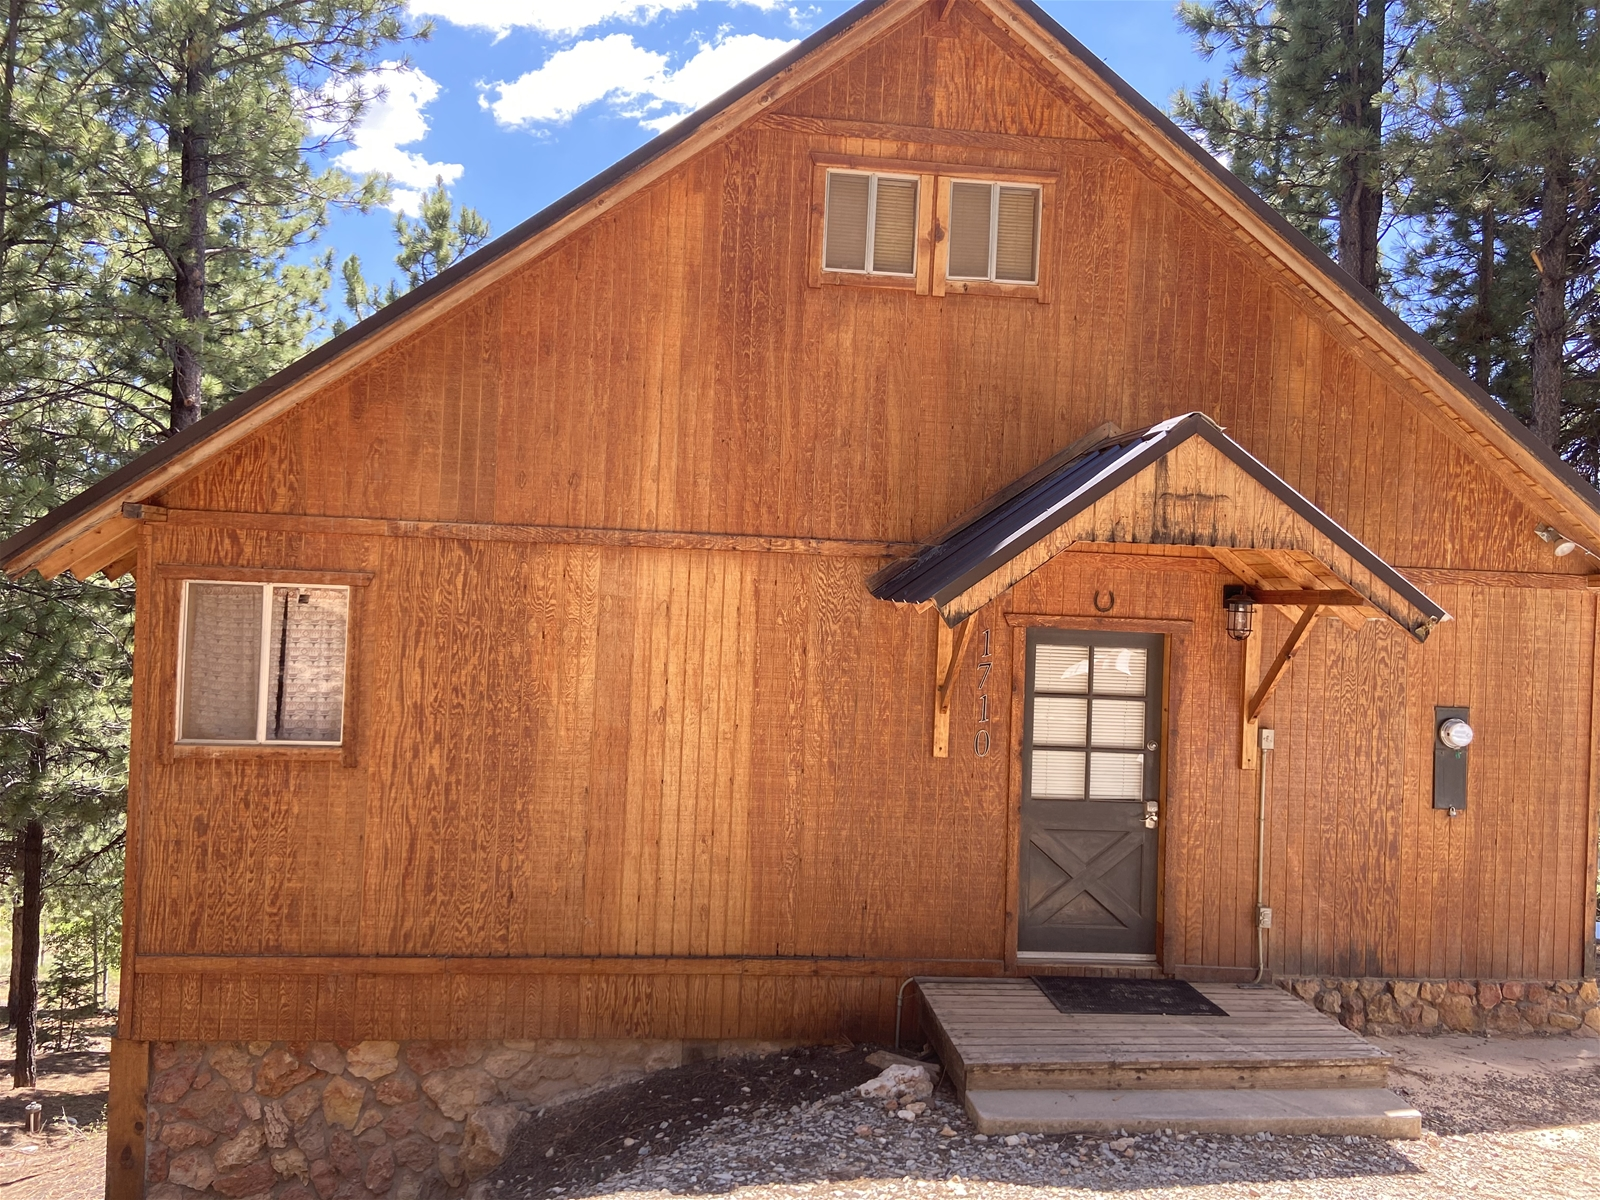 Floor Plan for The Bird House is  on wooded lot with wood burning stove and centrally located to the National Parks. 2  bedroom / 1 bath sleeps up to 6 people